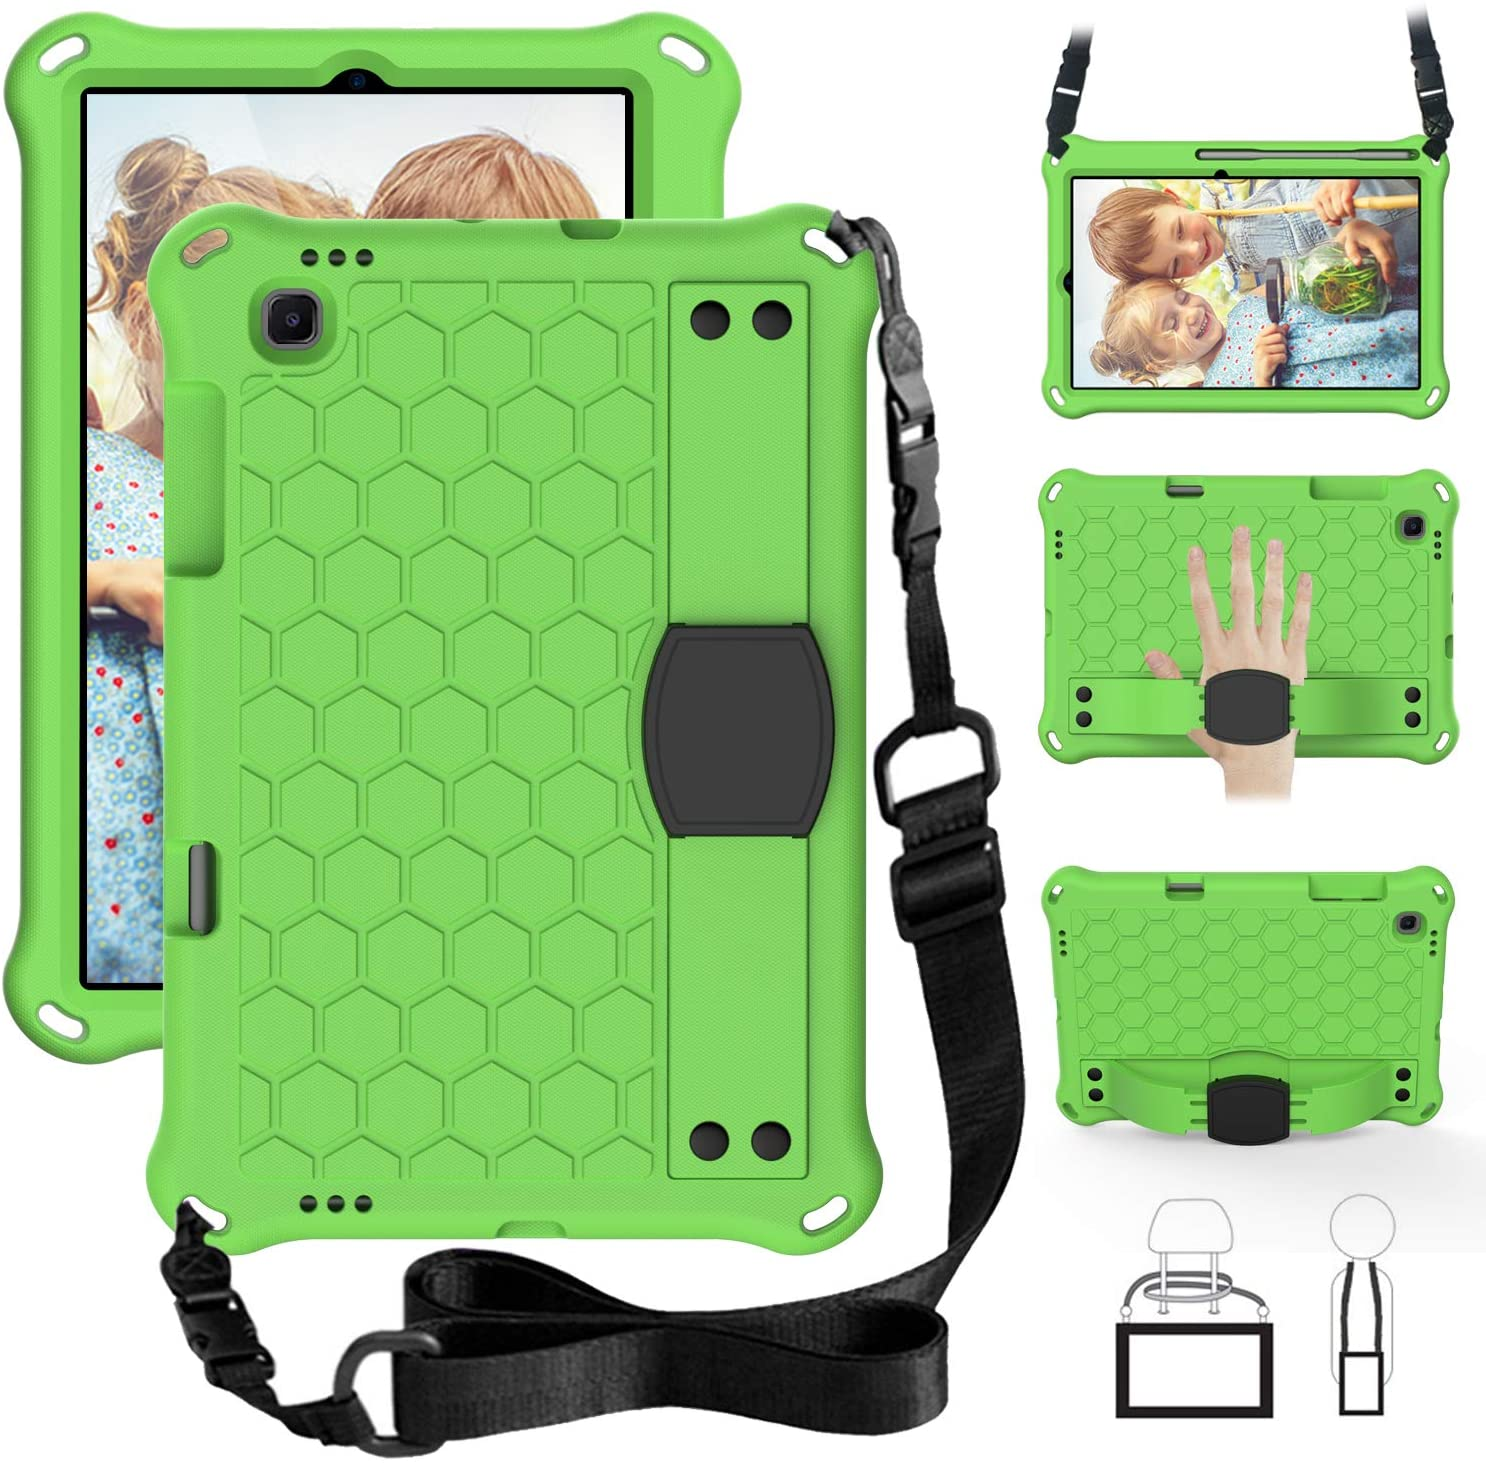 EC-Touch Case for Samsung Galaxy Tab S6 Lite 10.4 2020(SM-P610/P615),Slim Shockproof Impact-Resistant Silicone Stand Smart Cover Case with Hand Strap,Shoulder Strap (Green+Black)